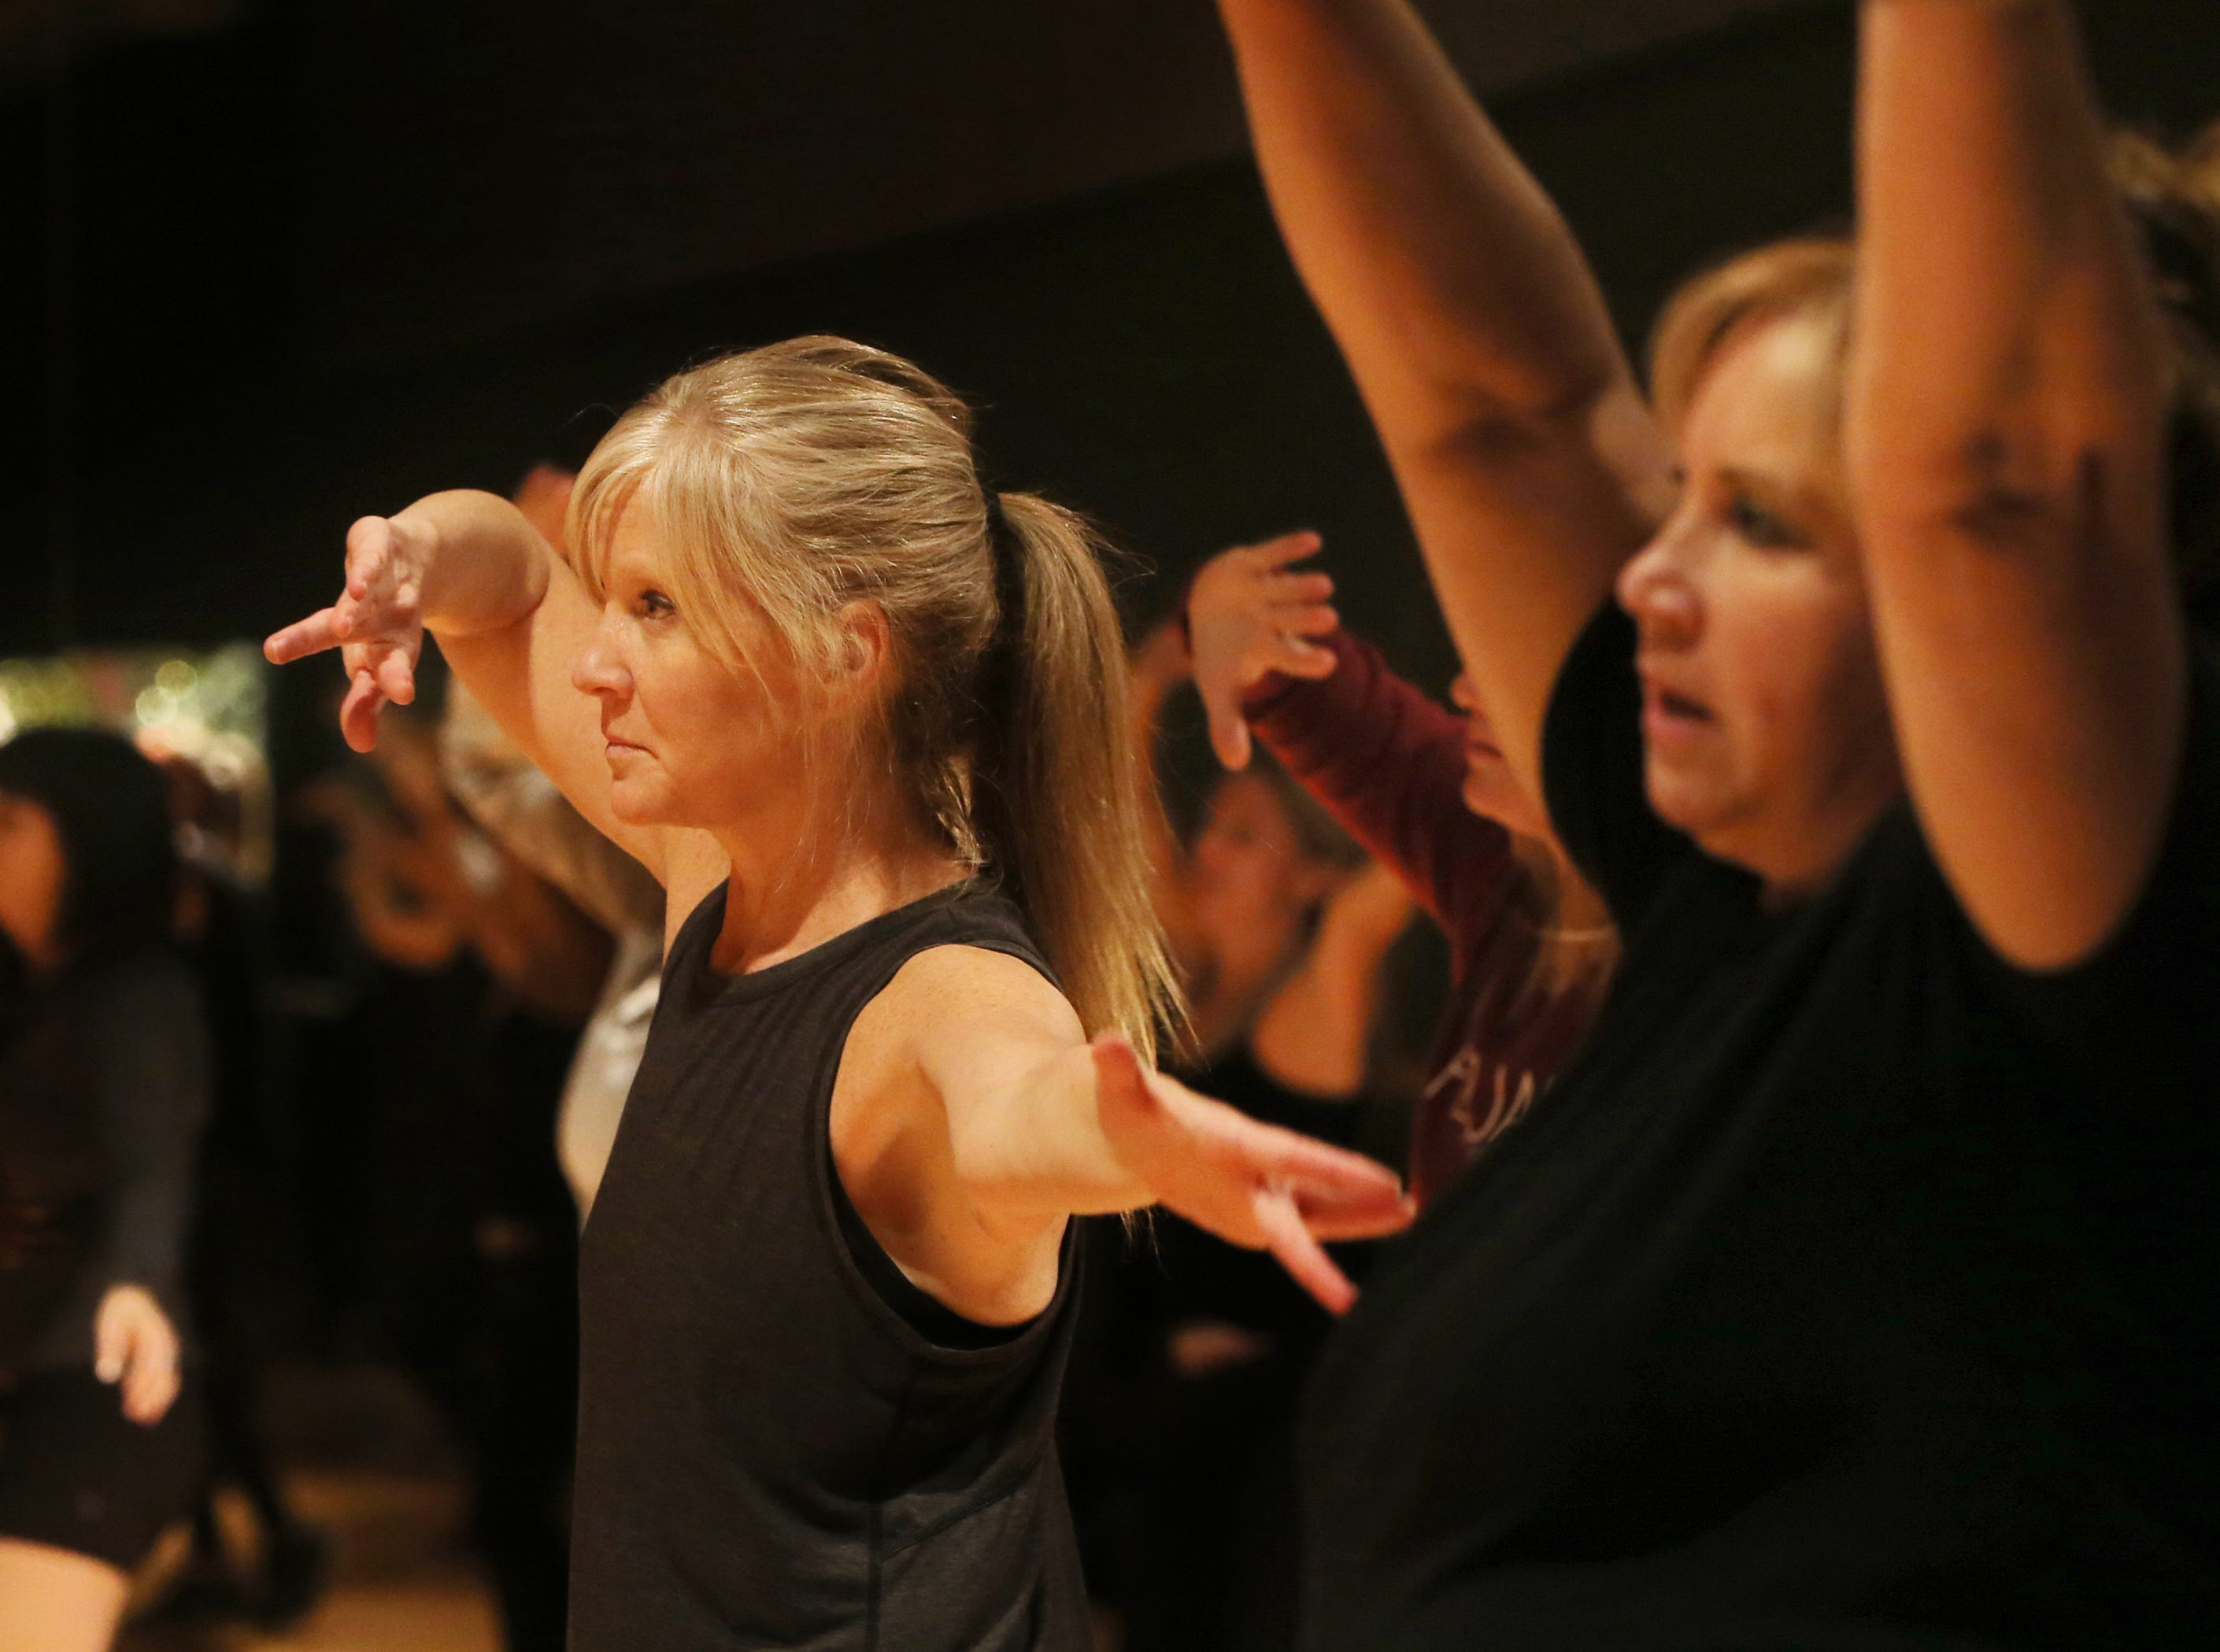 Nicole Fogelson, left, and Paulette Worthy work out during a PlyoJam class at RockIt Dance Studio in Westlake Village.